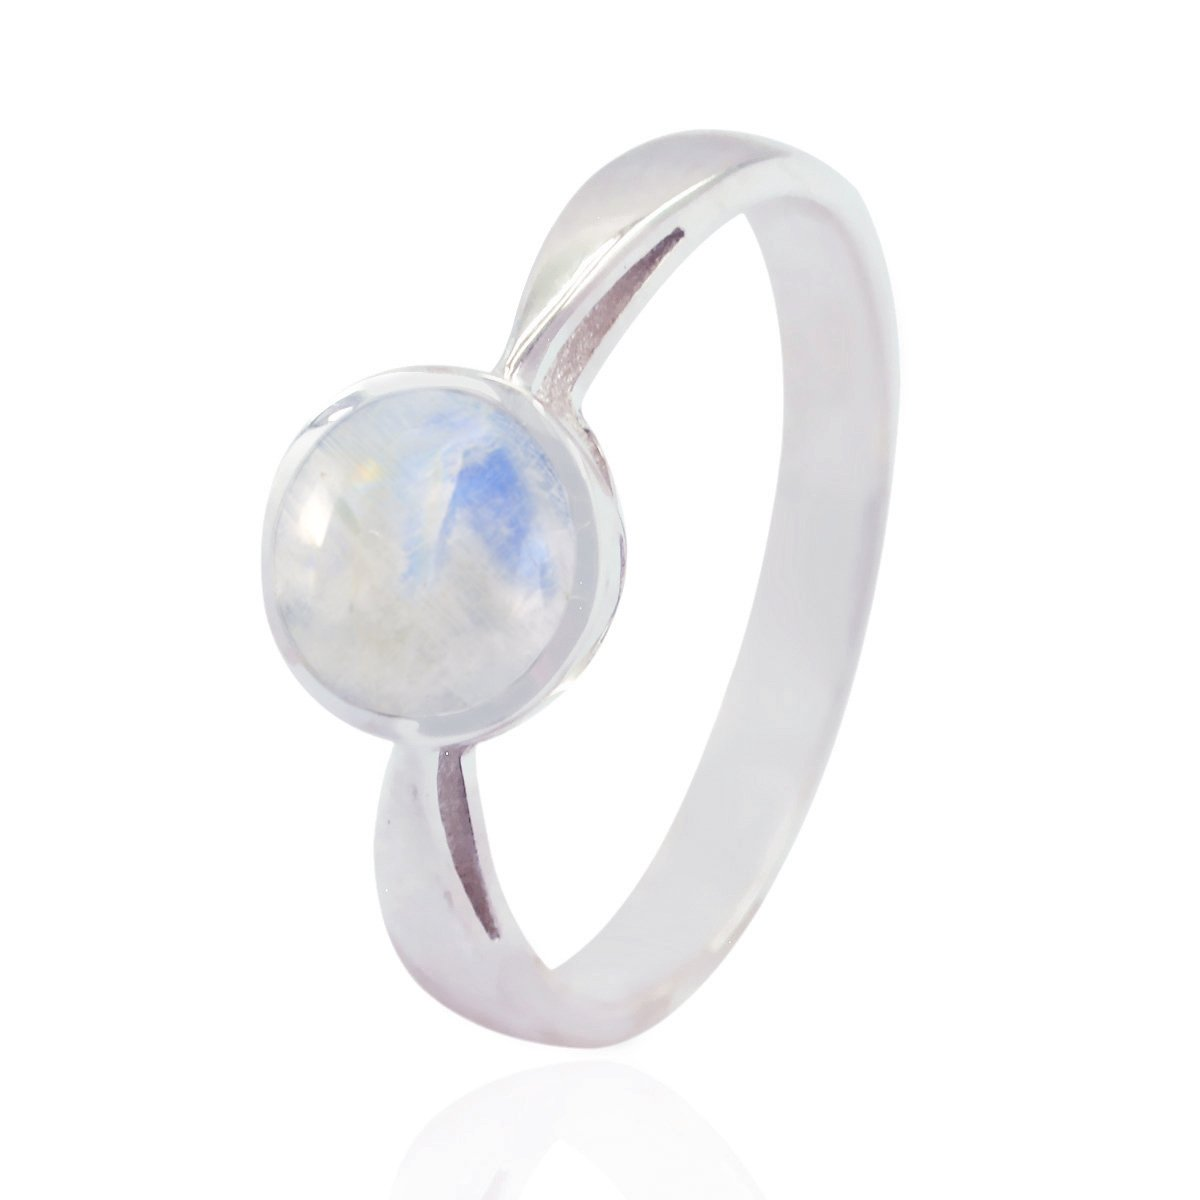 Exporter Jewellery Great Item Gift for Fathers Day Great Ring 925 Sterling Silver White Rainbow Moonstone Good Gemstones Ring Good Gemstones Round cabochon Rainbow Moonstone Ring